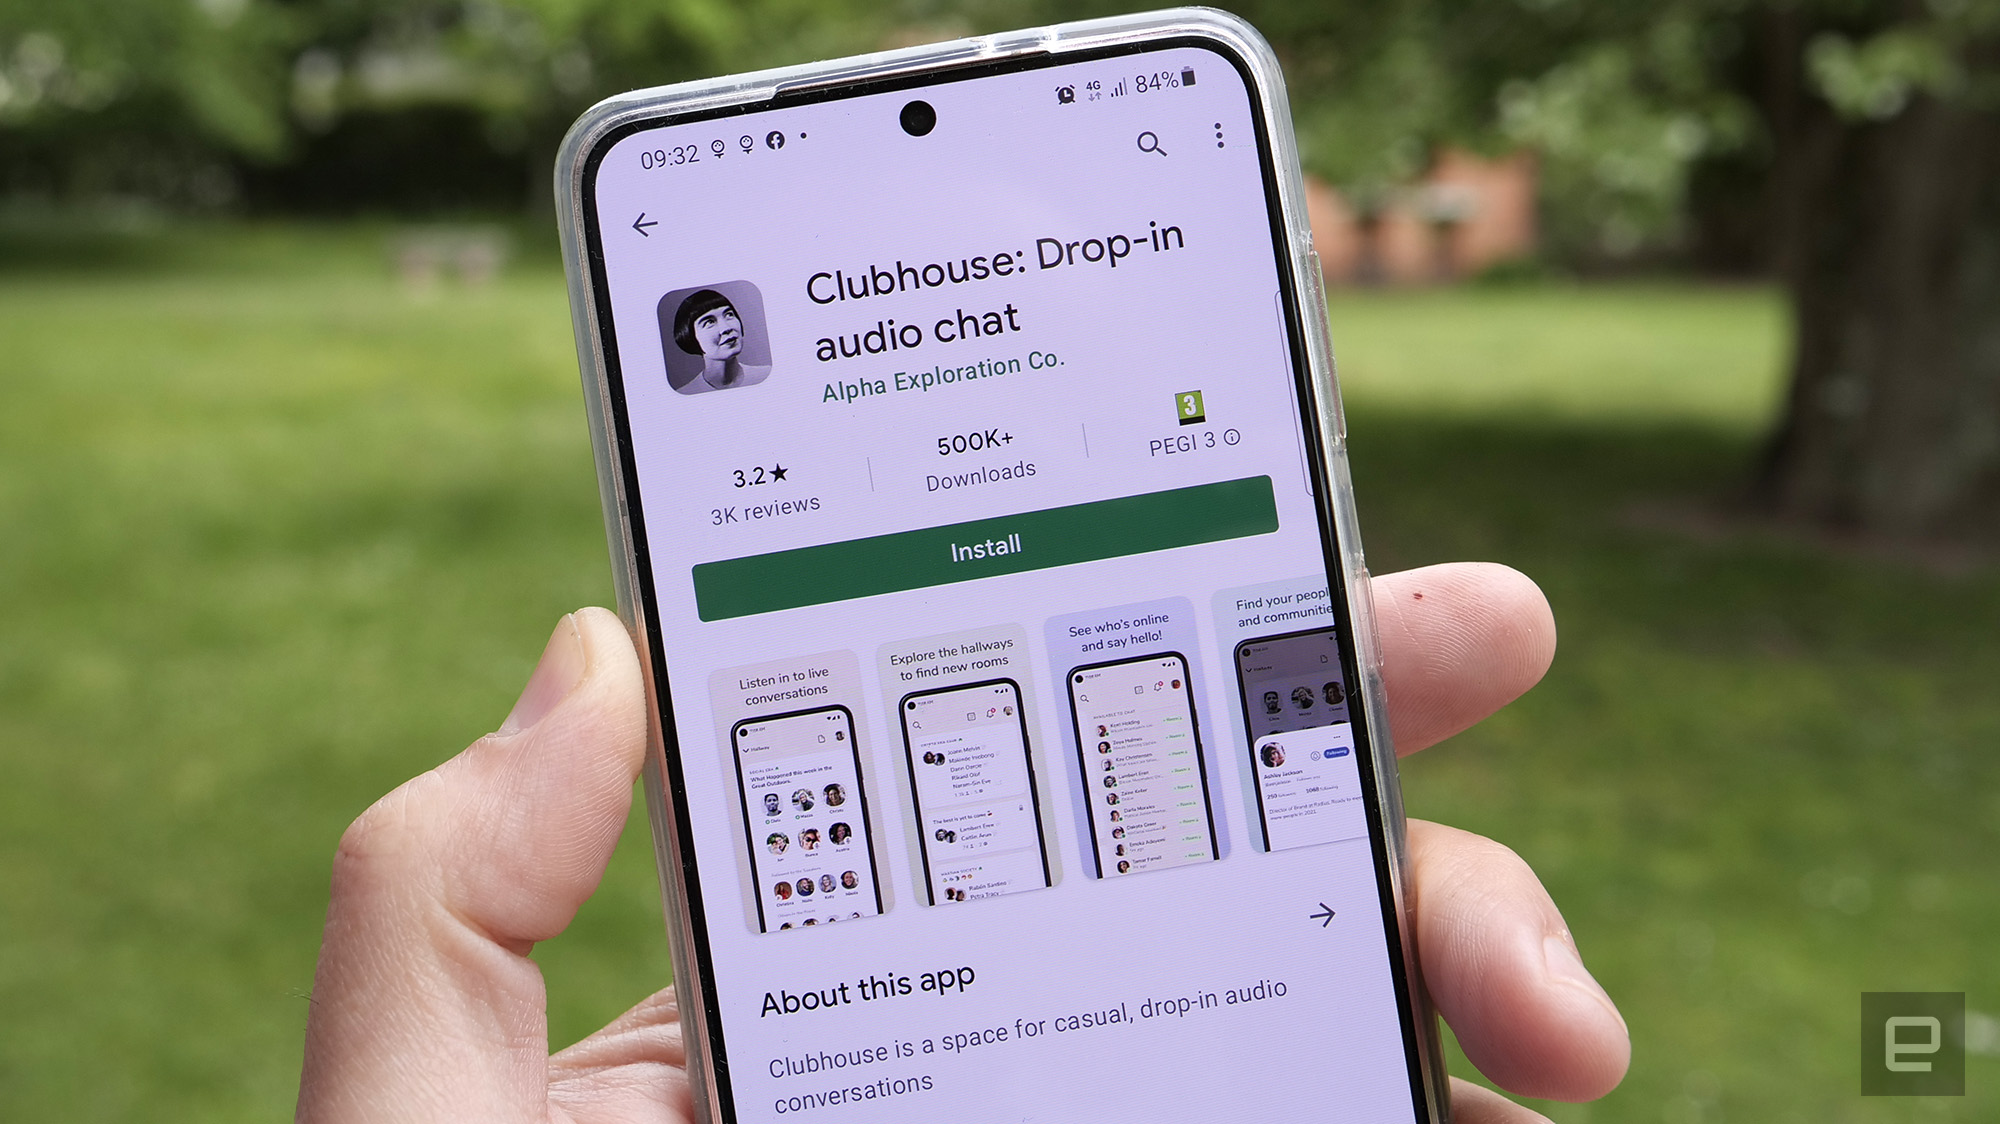 Clubhouse is now available worldwide on Android